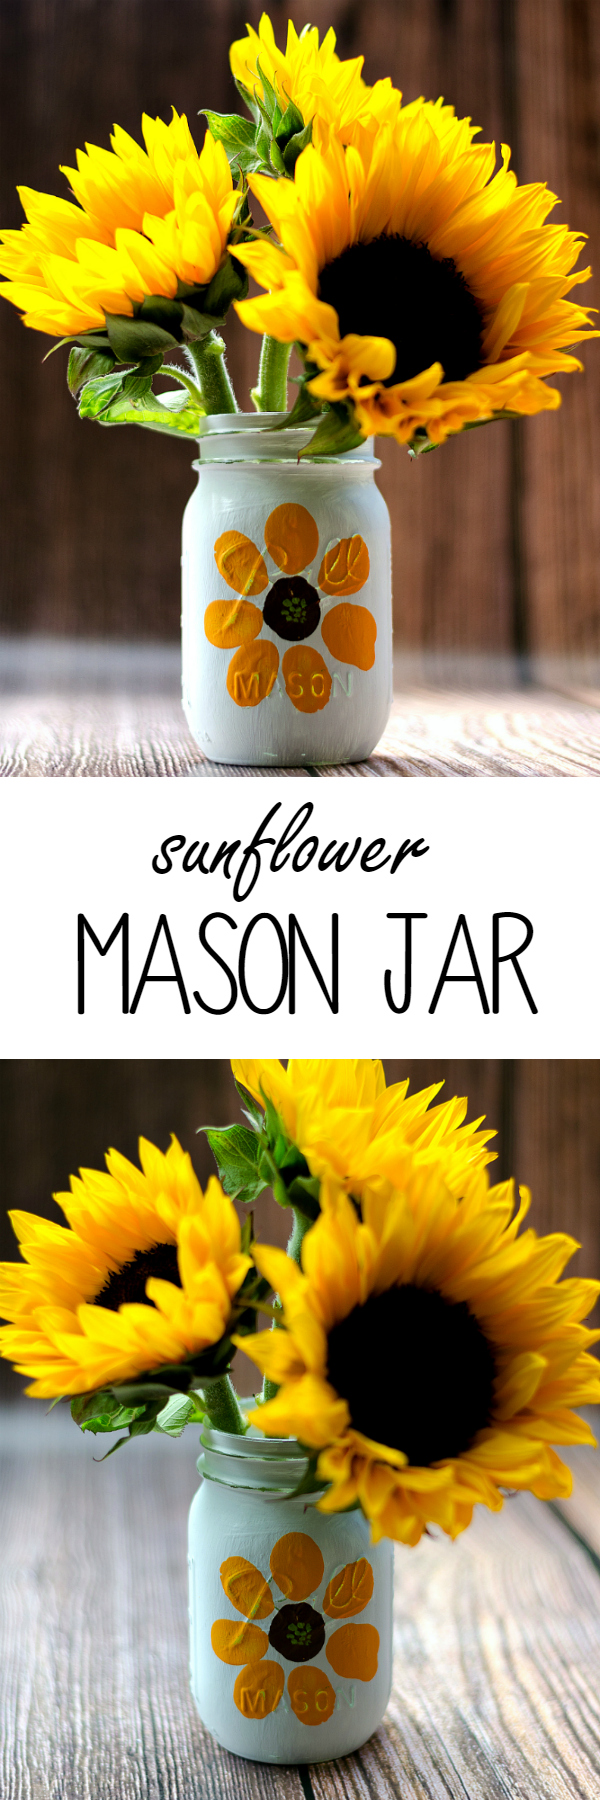 Mason Jar Craft Ideas for Kids